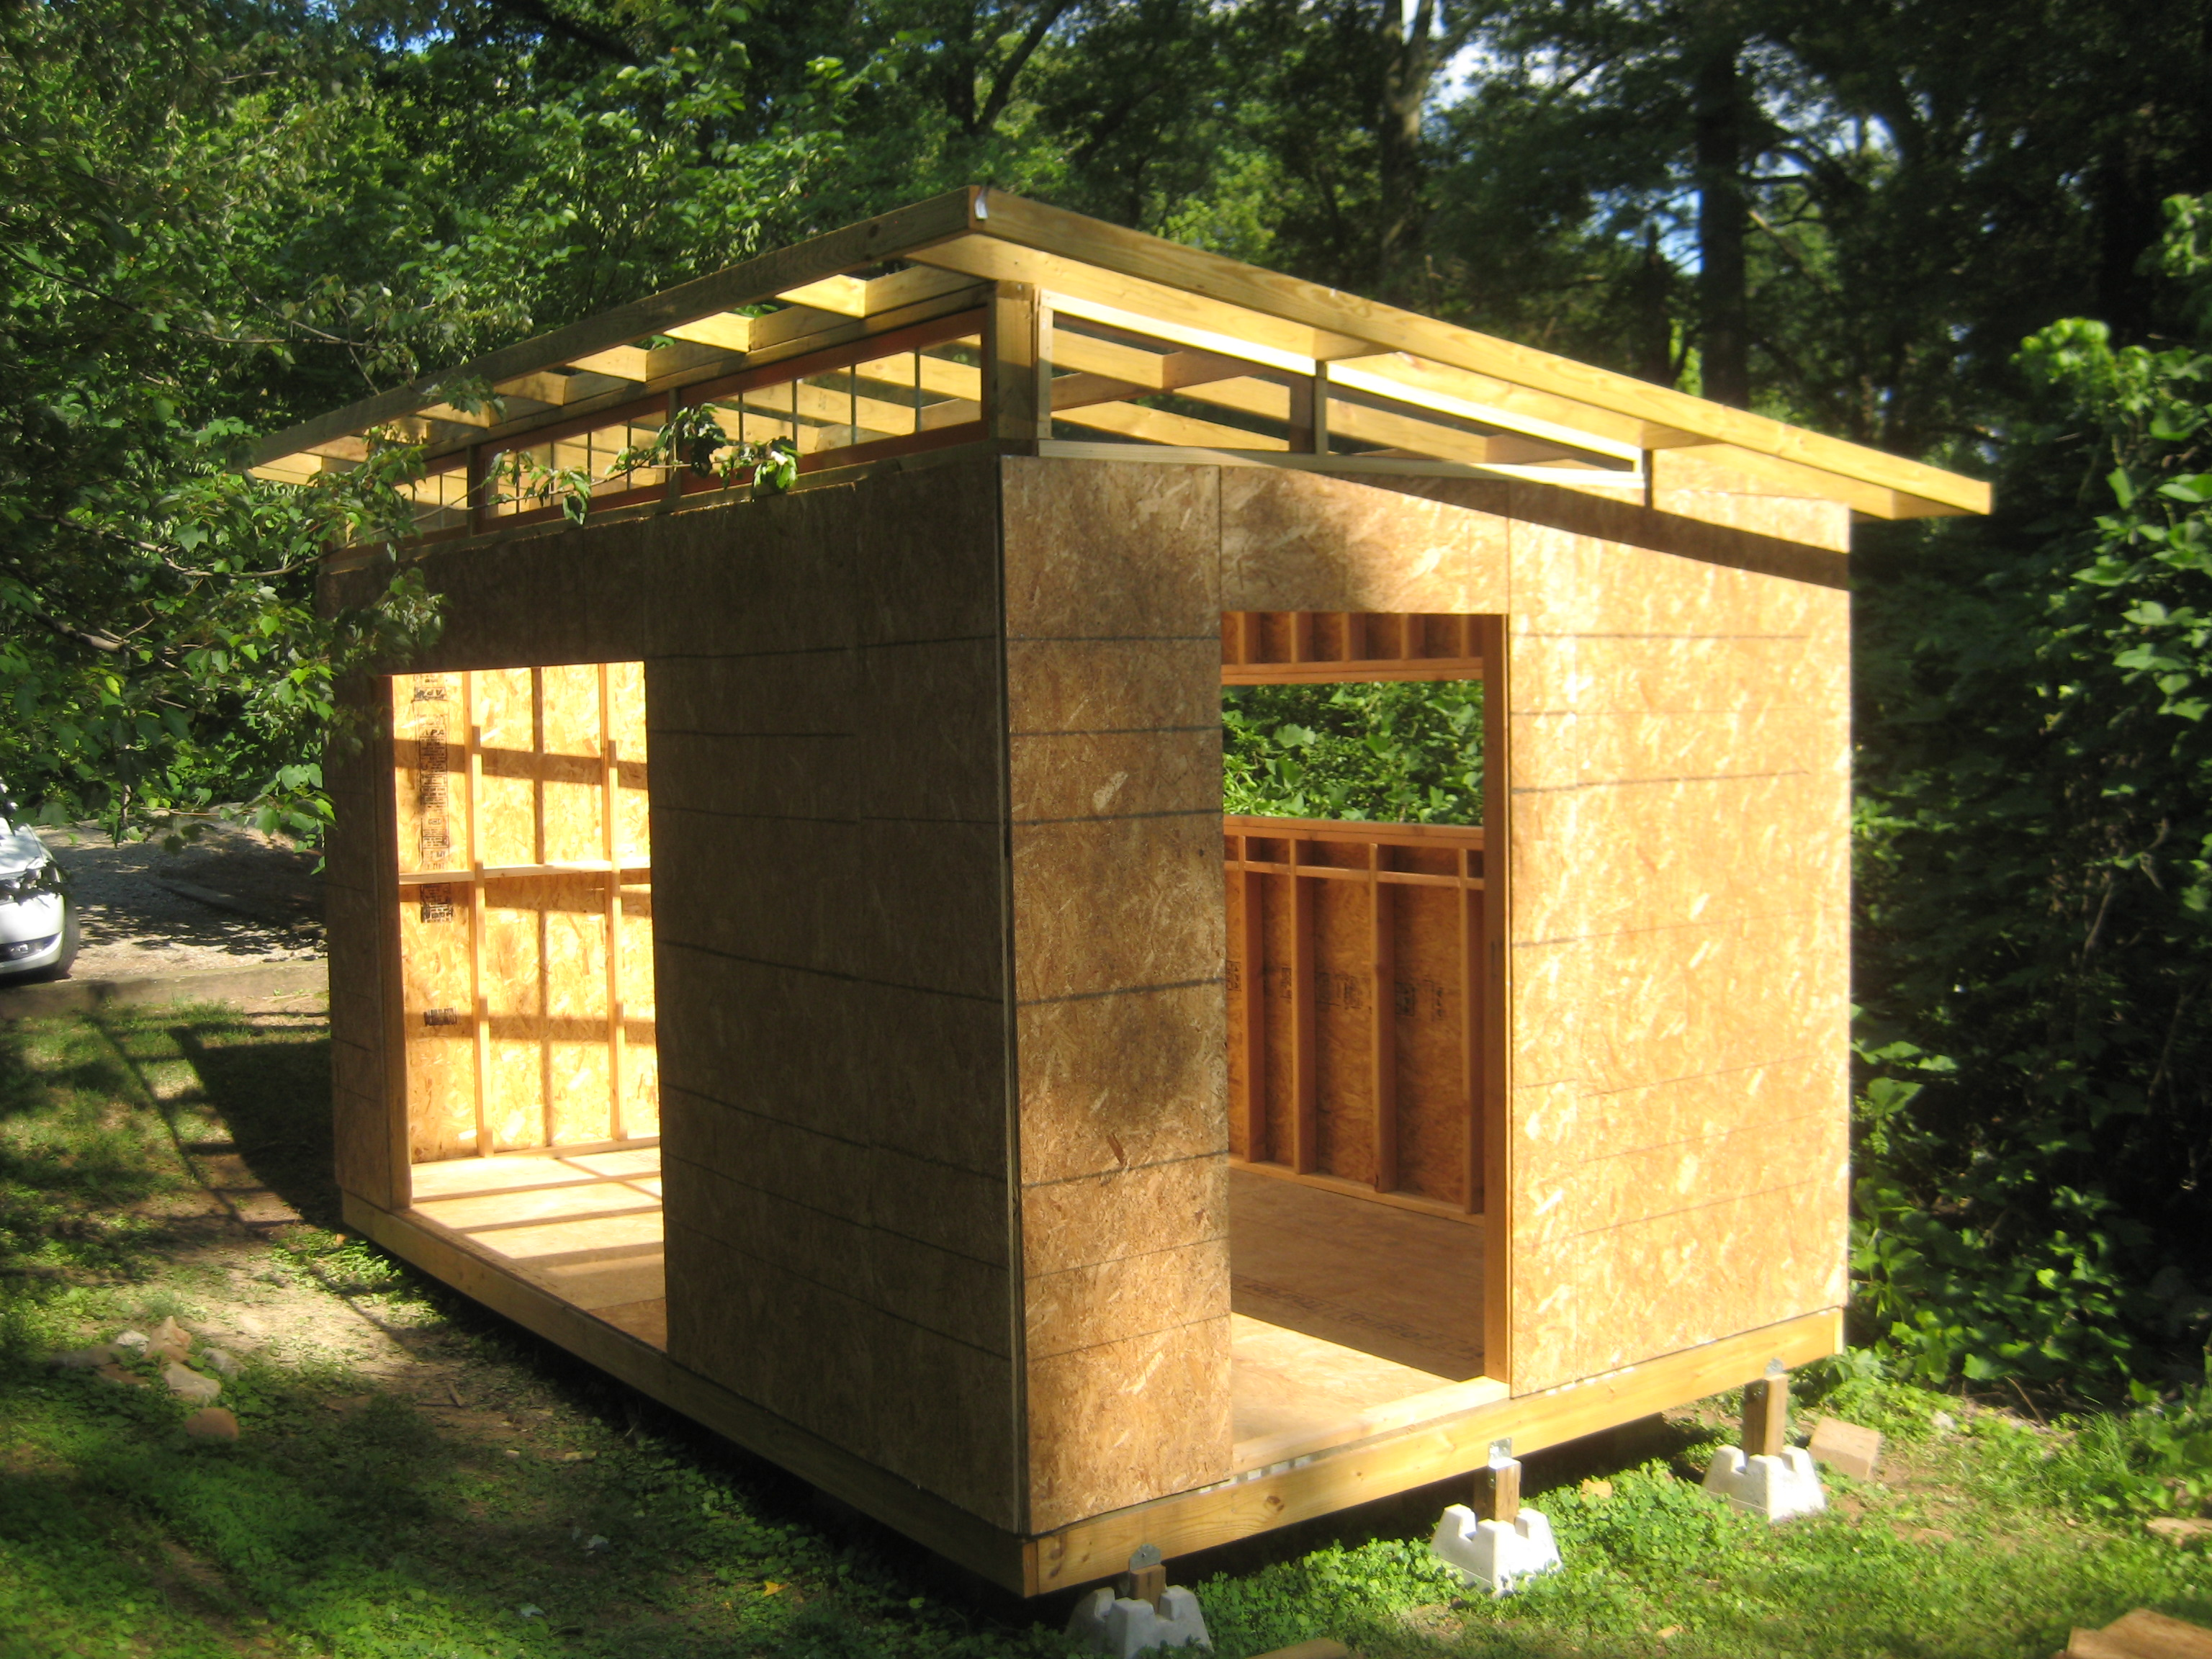 Diy modern shed project diyatlantamodern for Diy garden shed